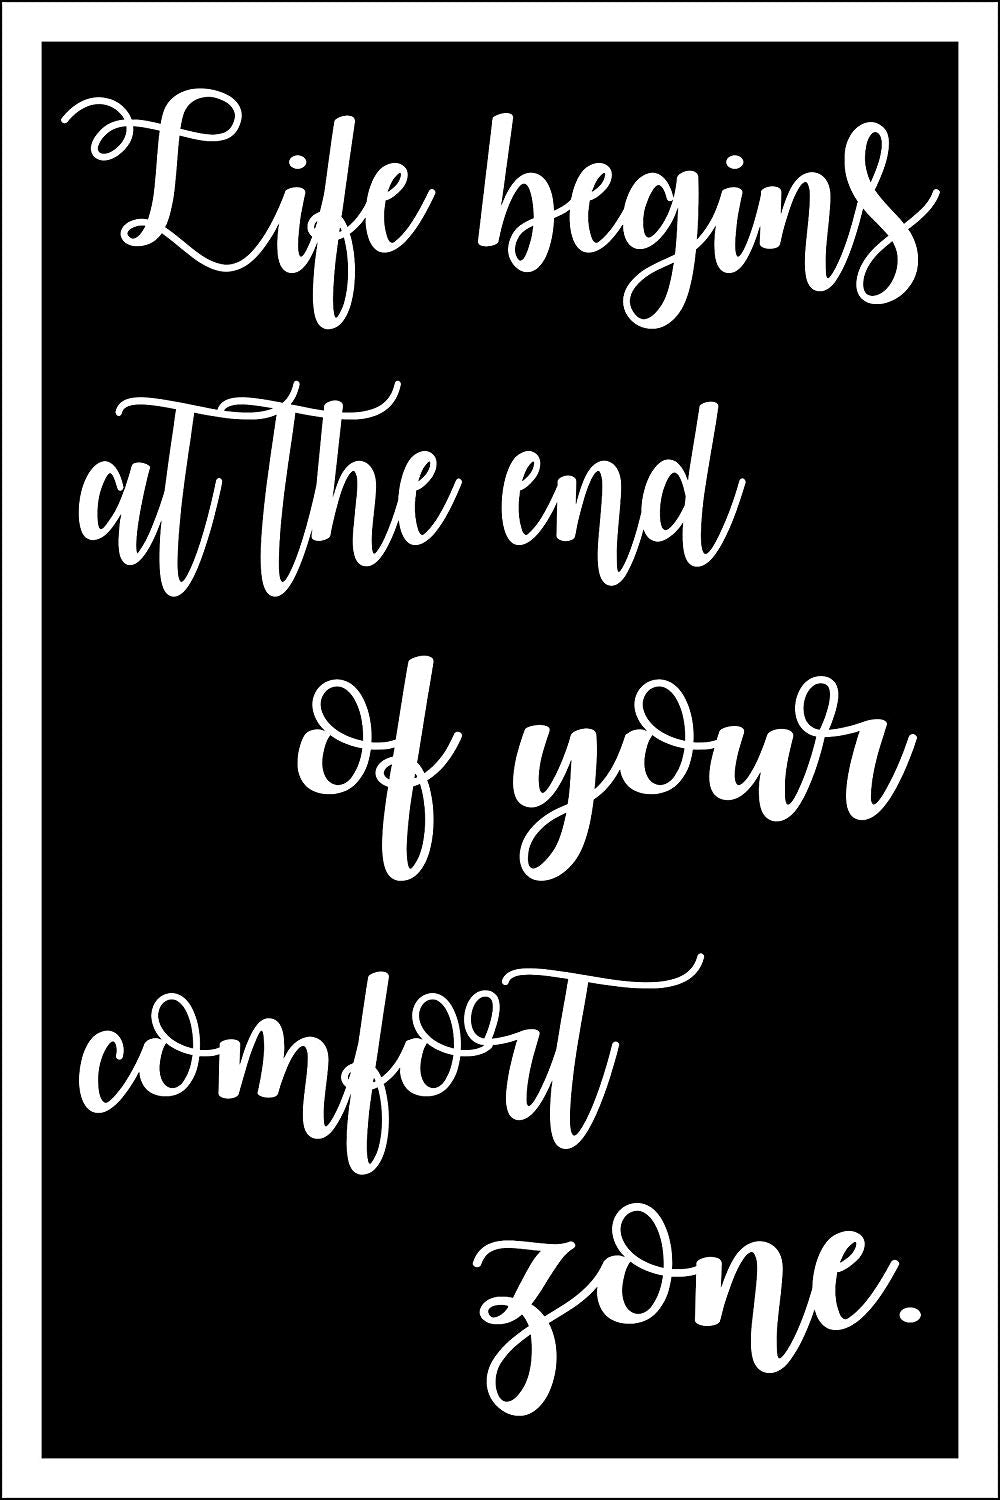 "Spitzy's Life Begins at The End of Your Comfort Zone - Motivational Poster (12"" x 18"" Dimensions Include a White .5"" Border)"